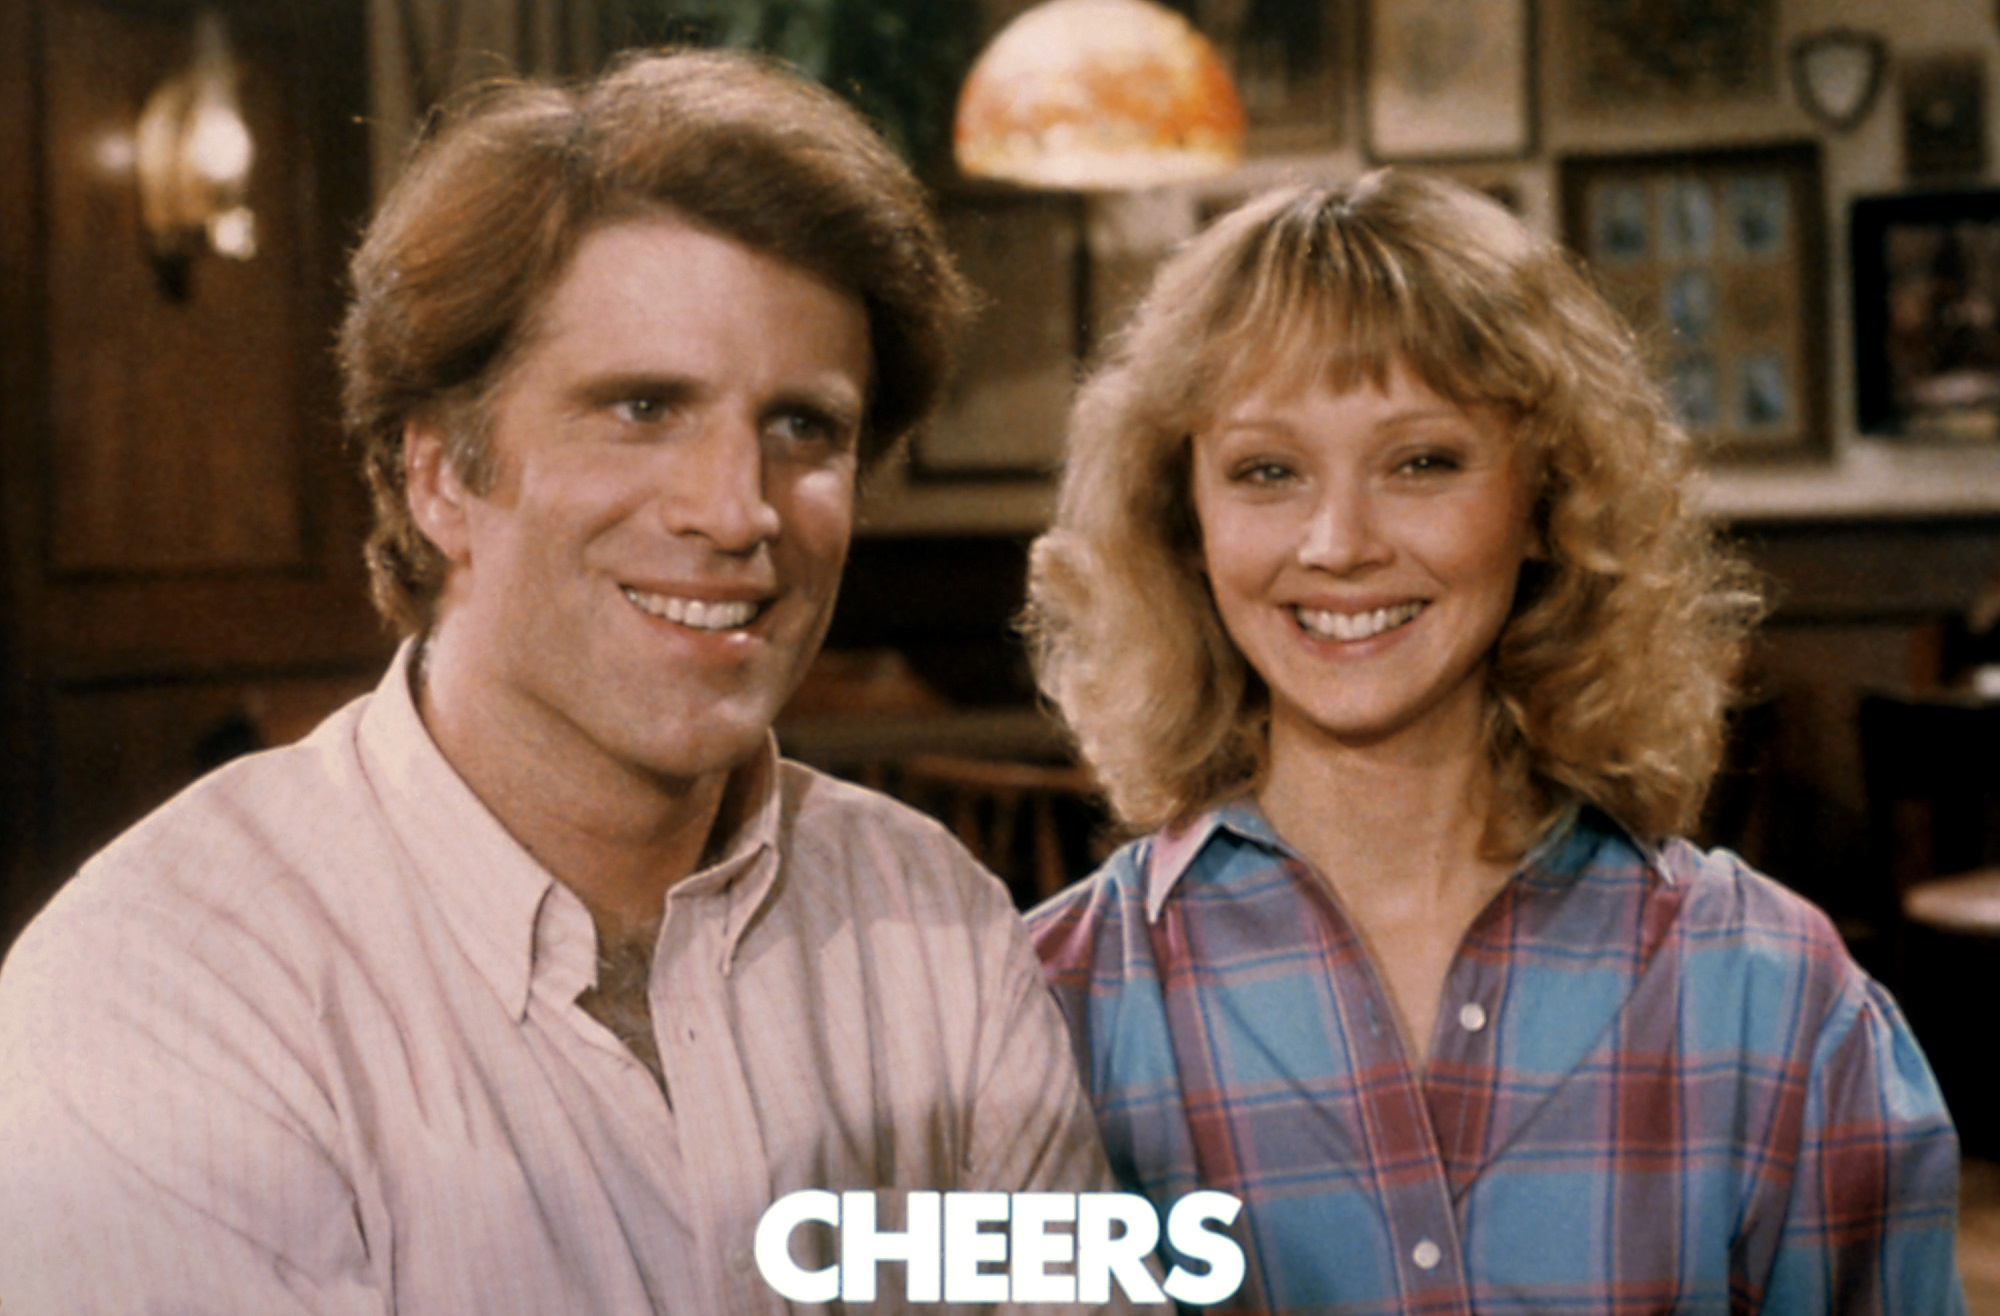 Ted Danson as Sam Malone, Shelley Long as Diane Chambers on Cheers